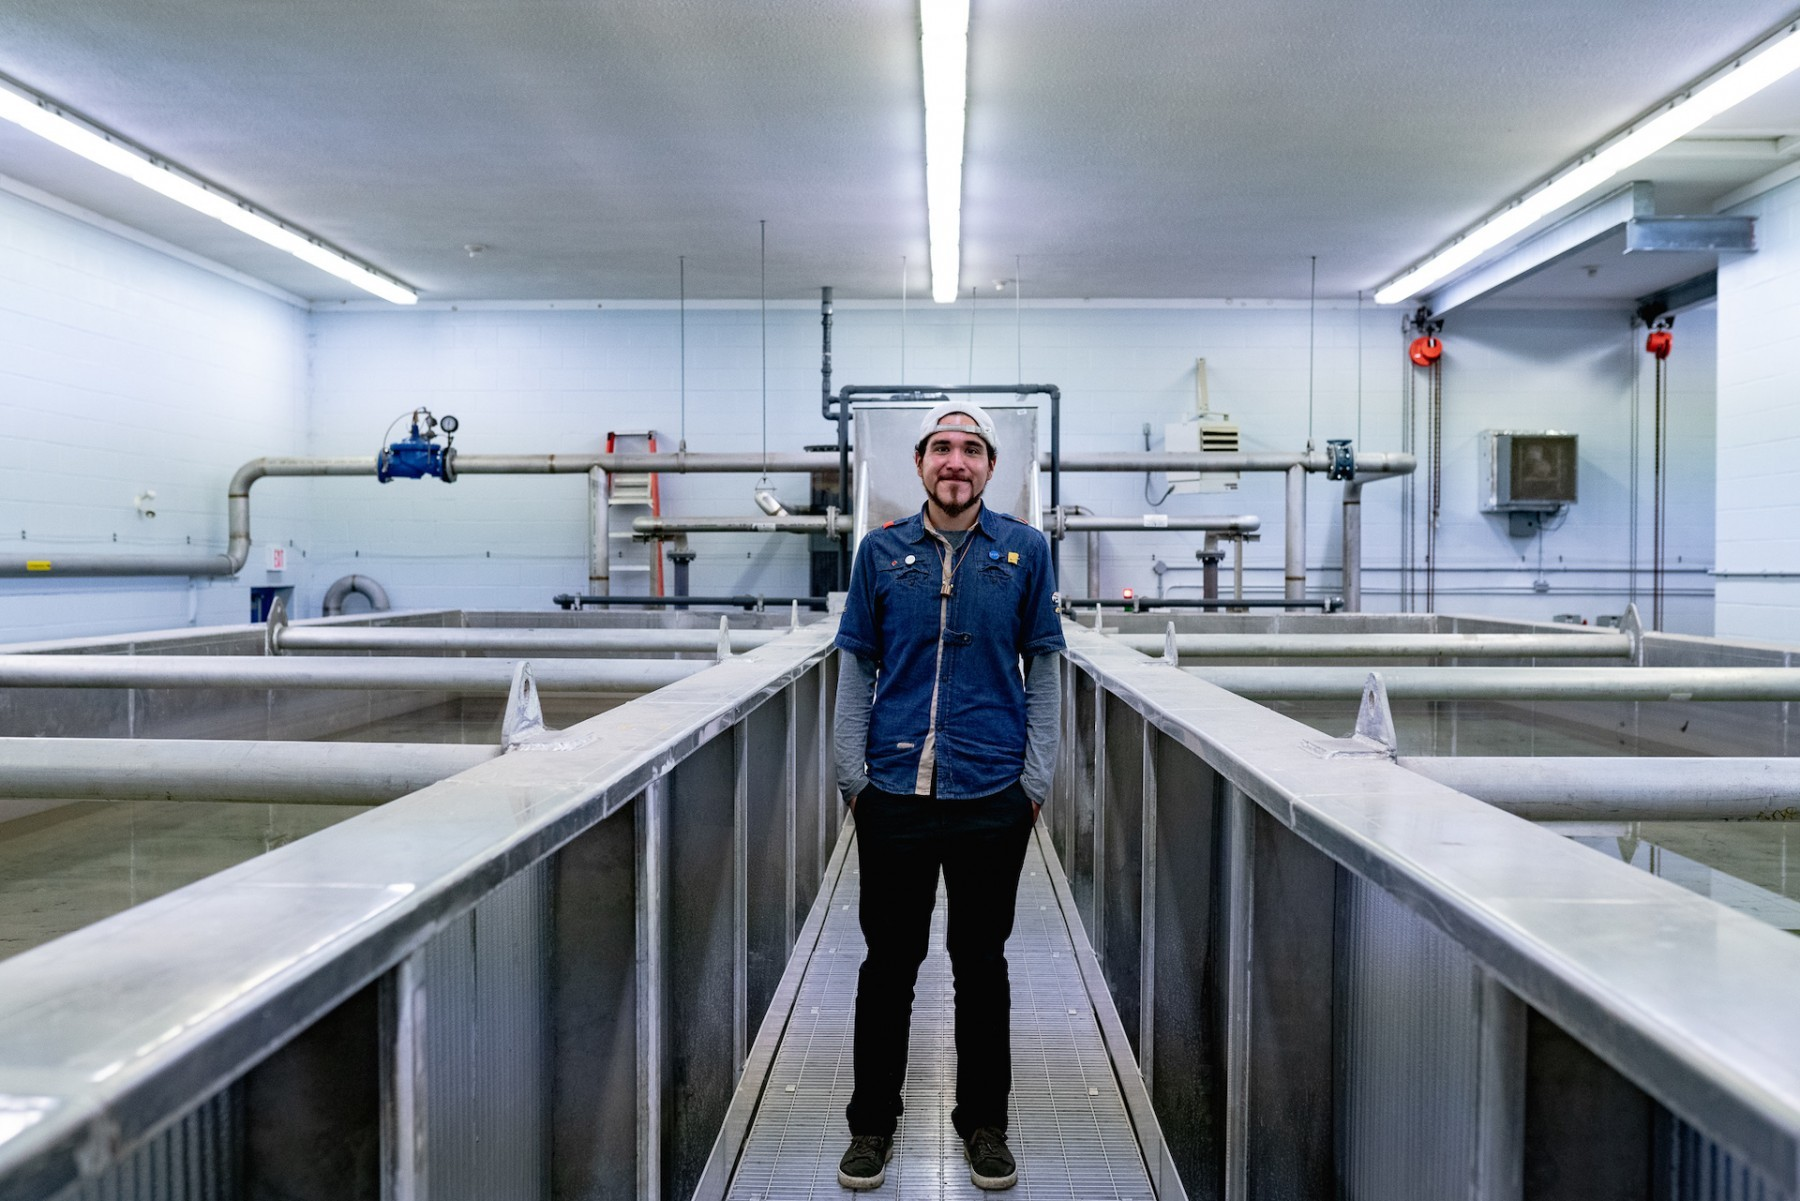 Eric standing in his water treatment plant